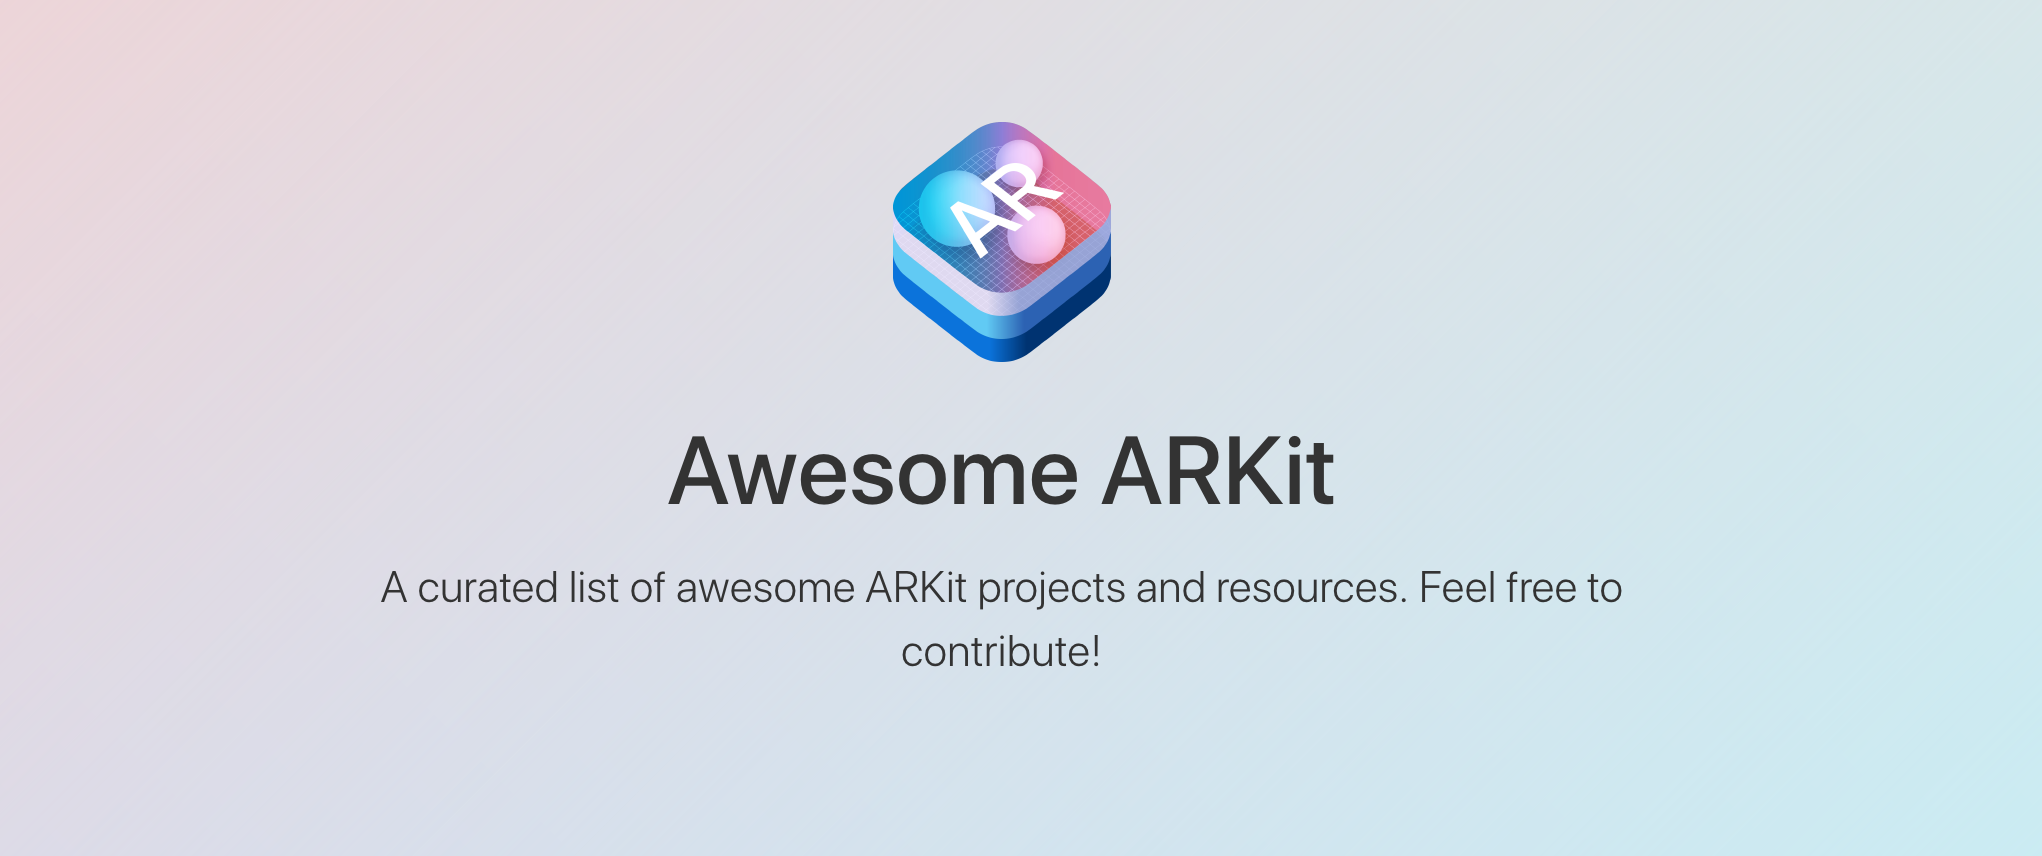 GitHub - olucurious/Awesome-ARKit: A curated list of awesome